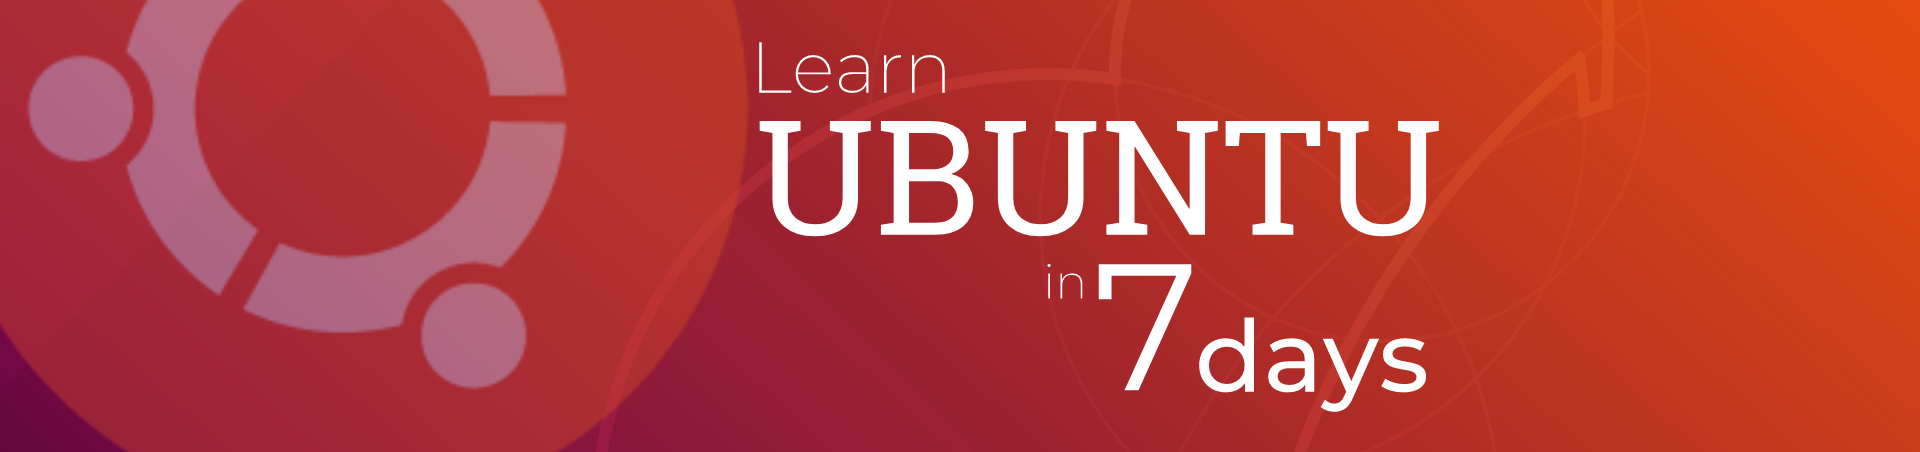 Learn Ubuntu in 7 days